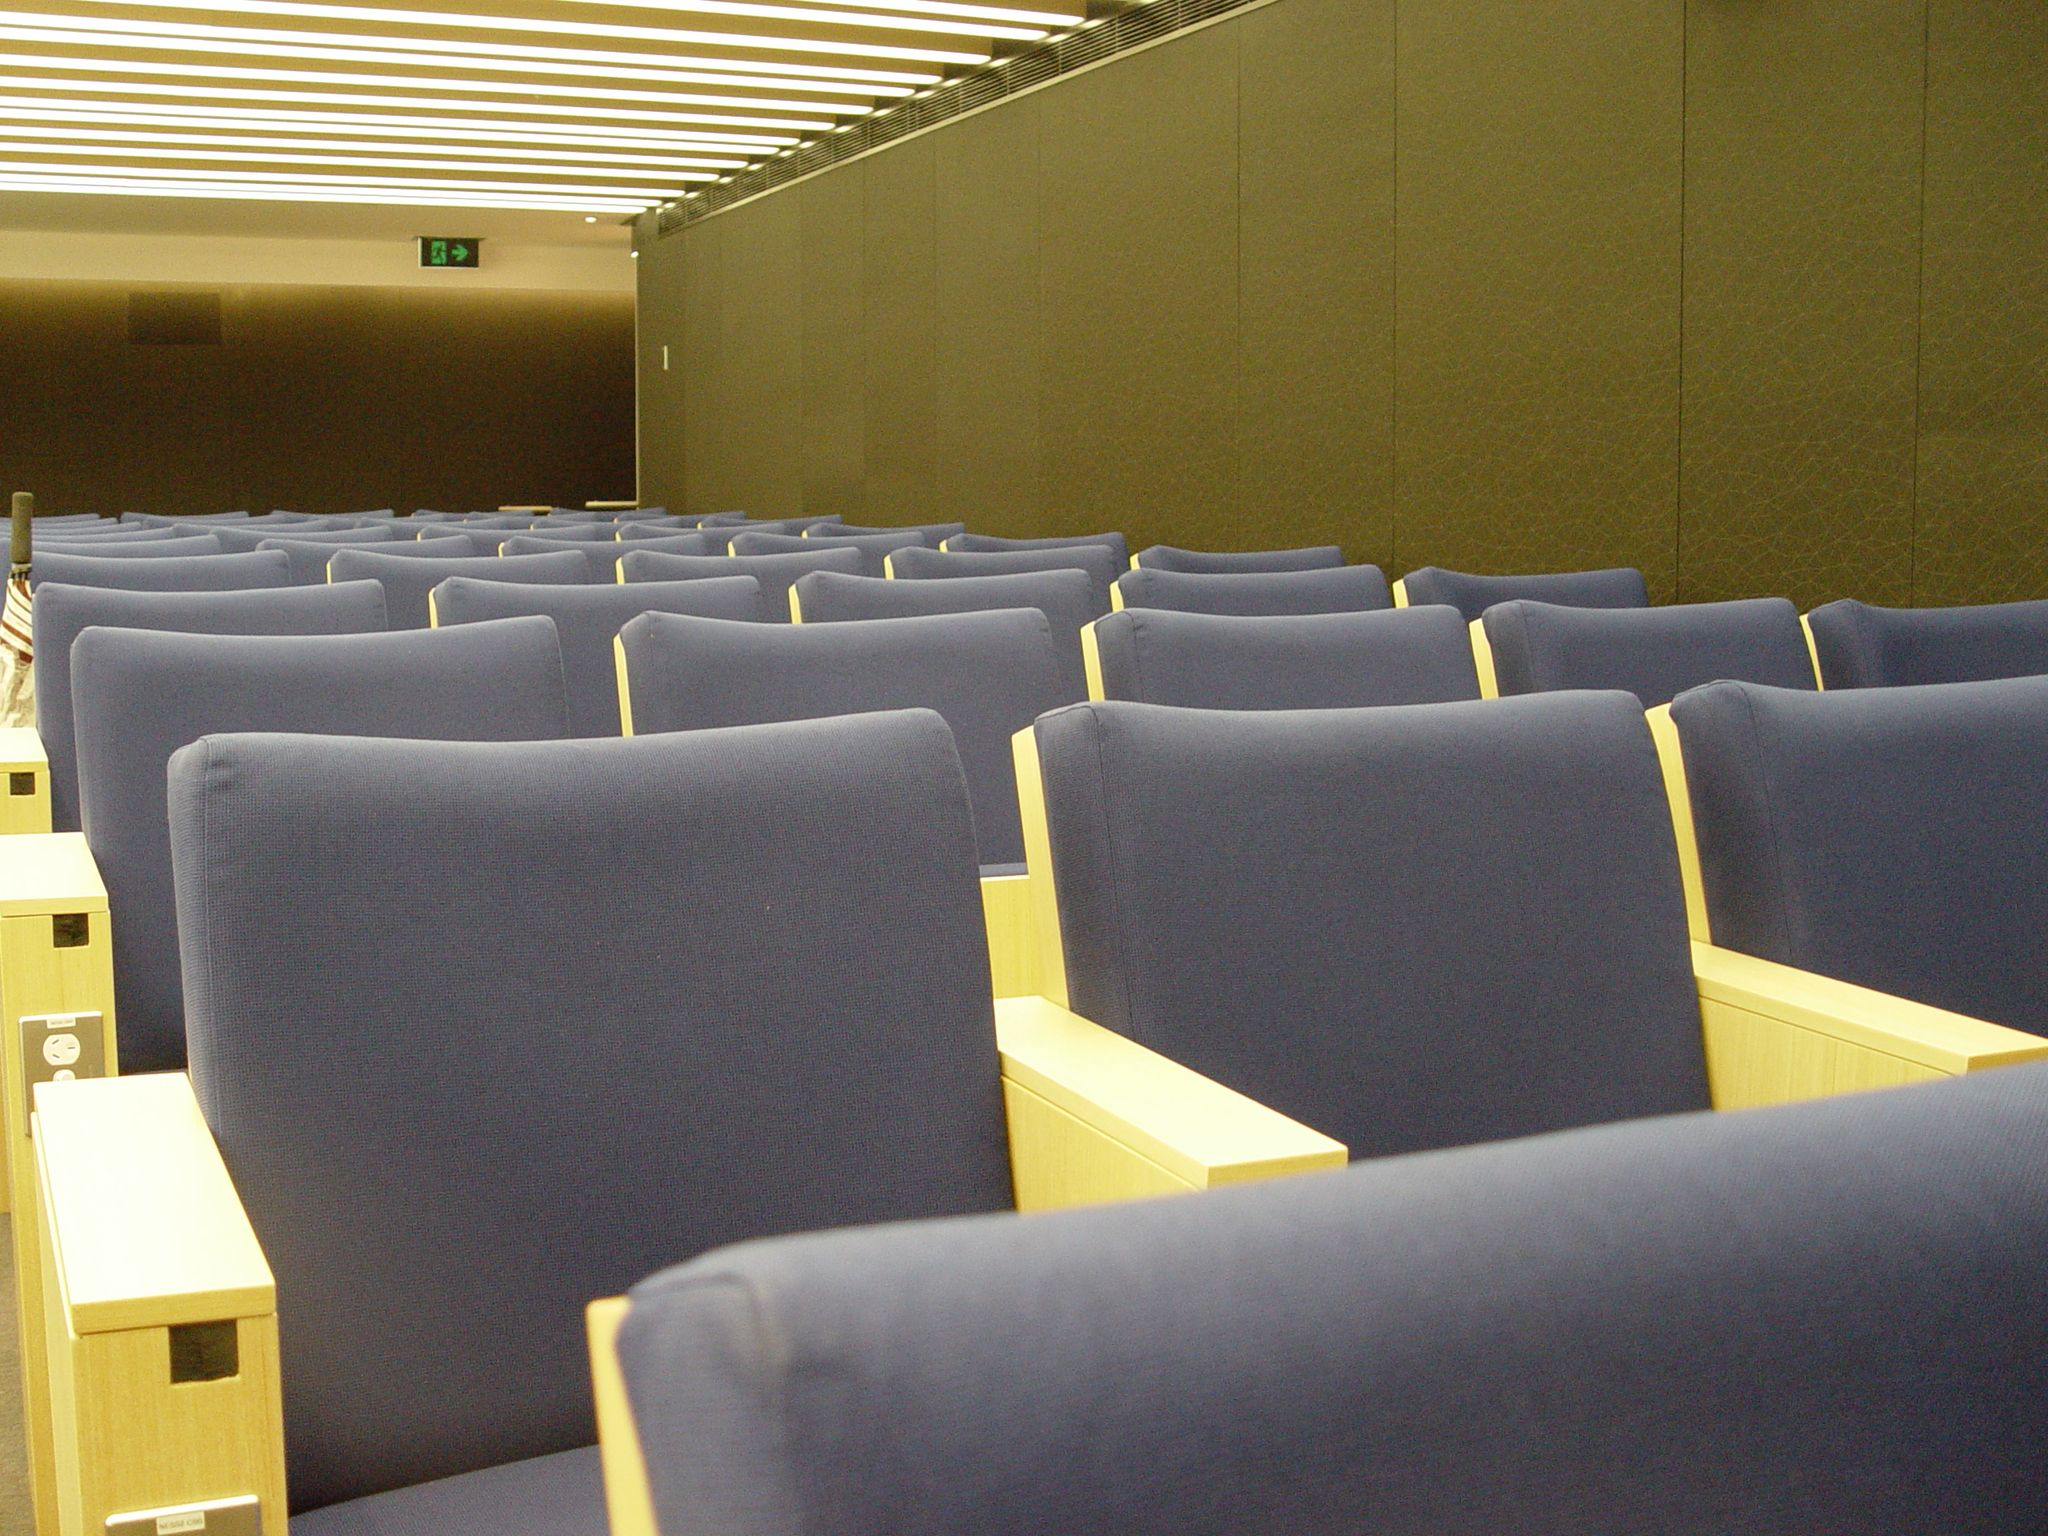 Auditorium Seating and Acoustic Wall Paneling